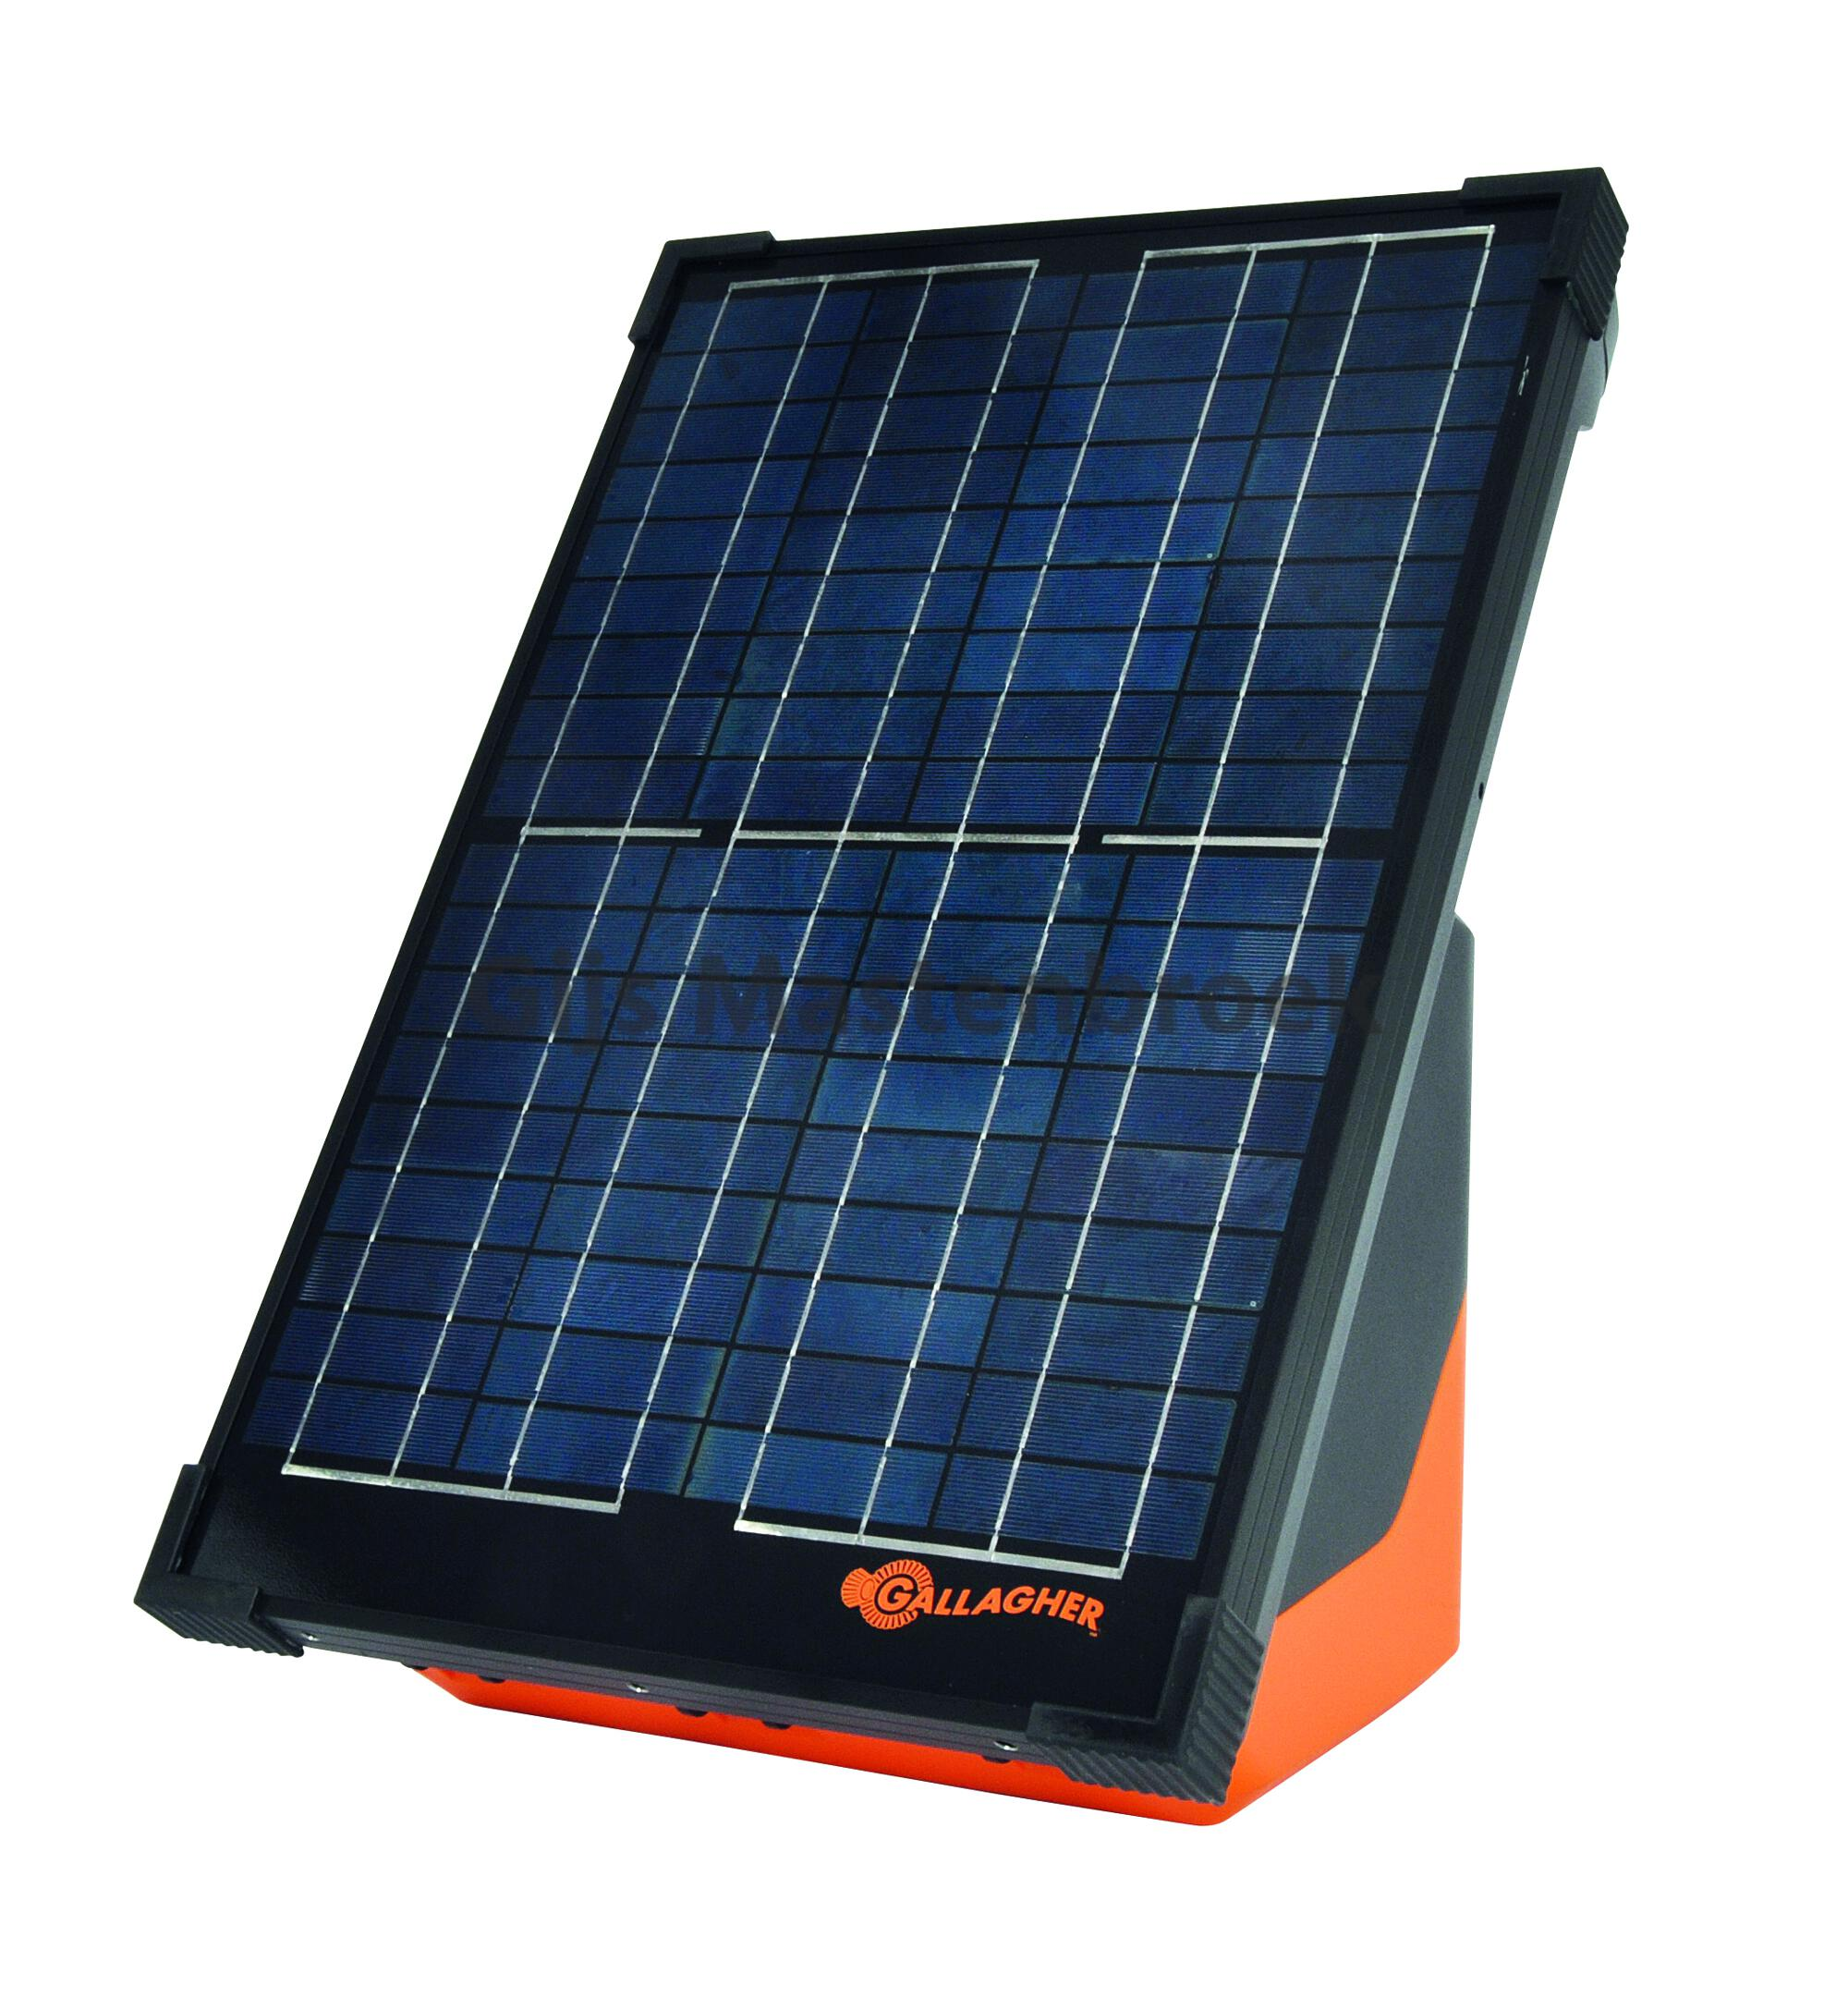 Gallagher Solar Apparaat S200